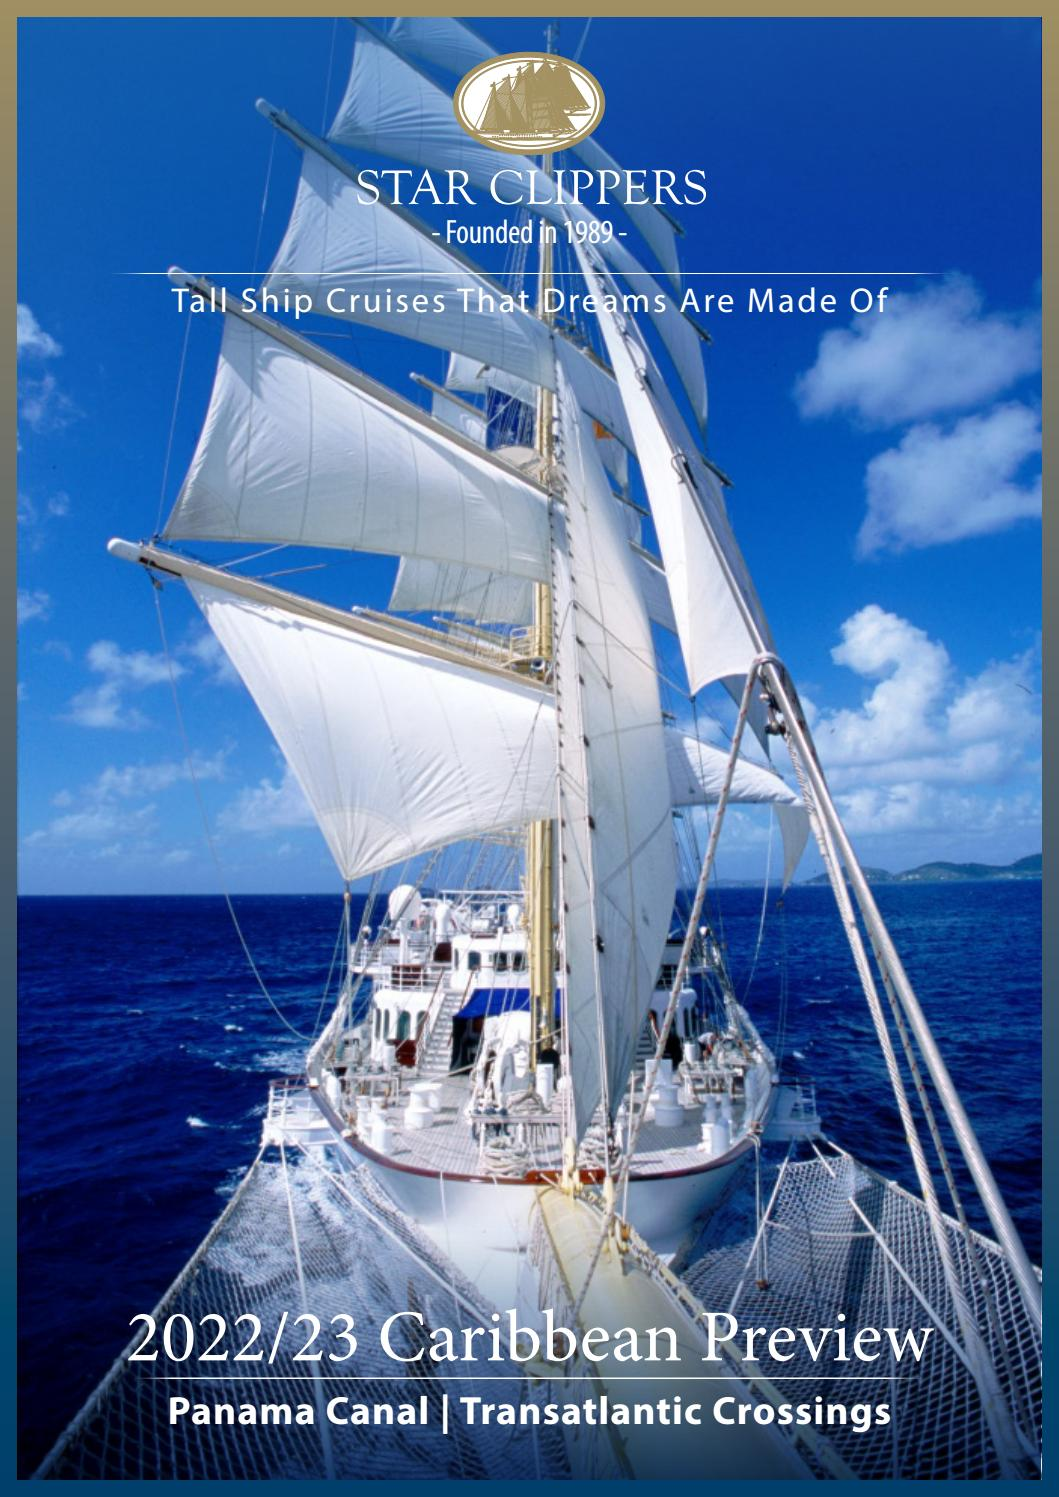 Star Clippers 2022/23 Caribbean Preview